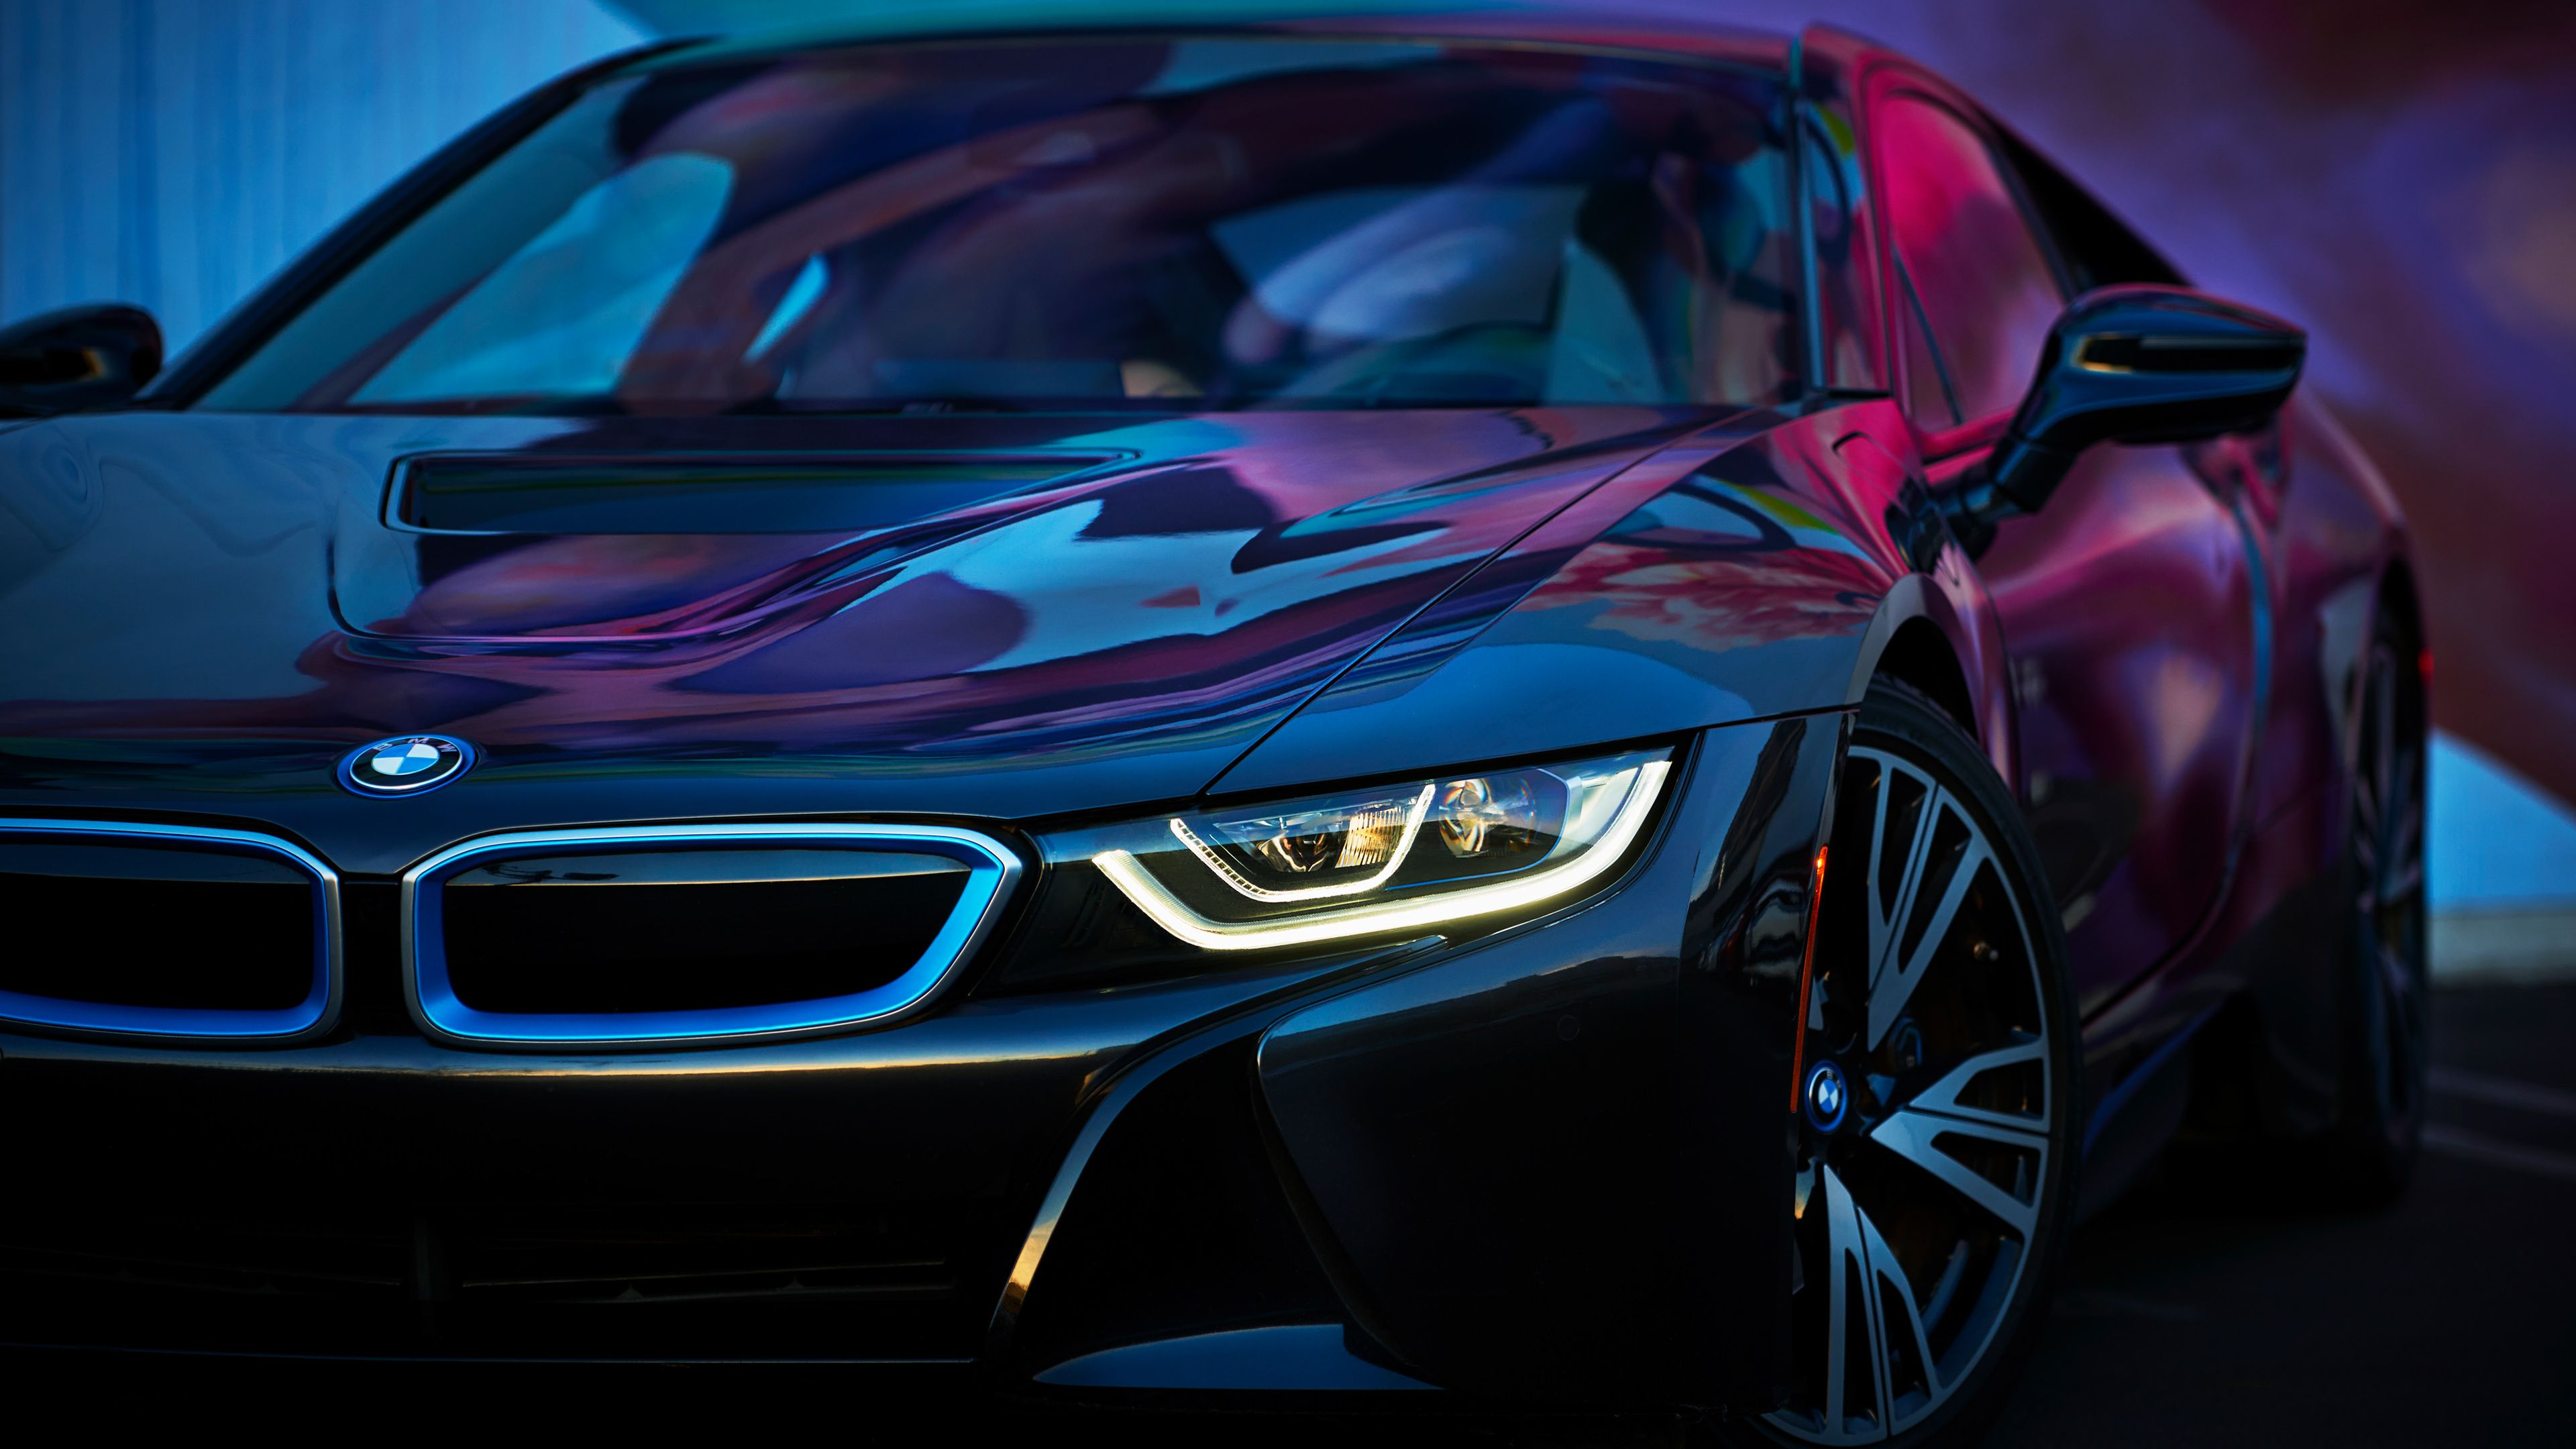 Bmw I8 2018 Hd Wallpapers Cars Wallpapers Bmw Wallpapers Bmw I8 Wallpapers 4k Wallpapers 2018 Cars Wallpapers Bmw I8 Bmw Wallpapers Bmw